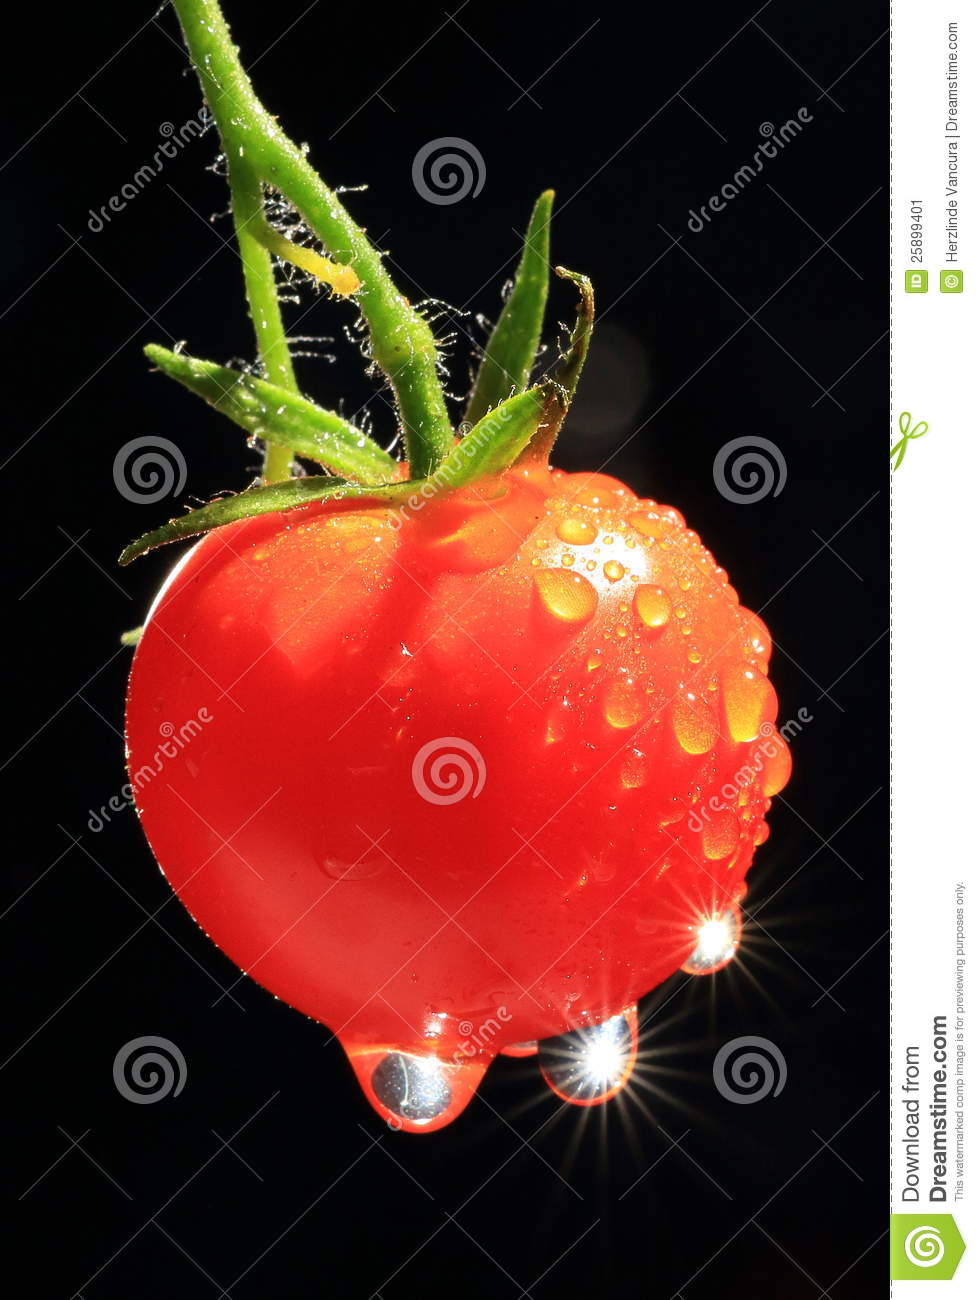 Download Ripe Tomato With Water Drops Stock Image - Image of freshness, drops: 25899401